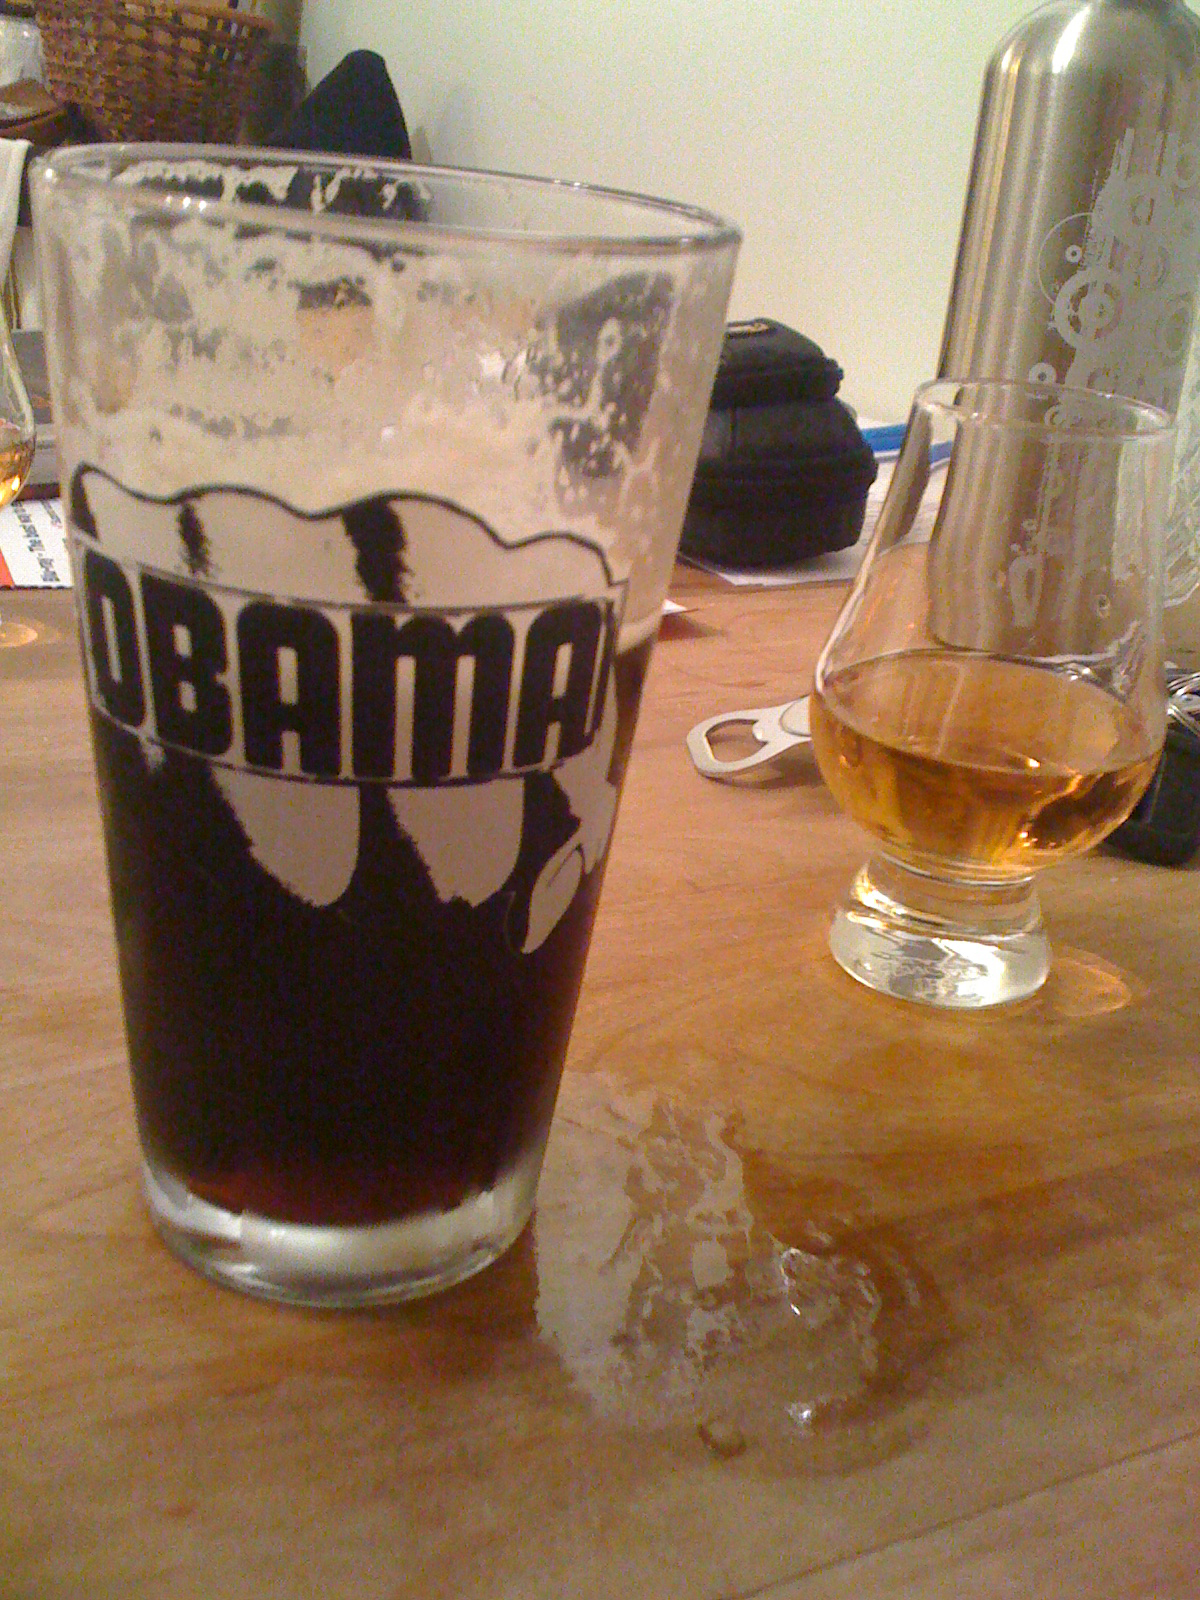 Brothers house Portland, ME :: some Midnight Porter from Sebago in an Obama glass and some scotch on the side... they are fists on the glass because Obama punches people!